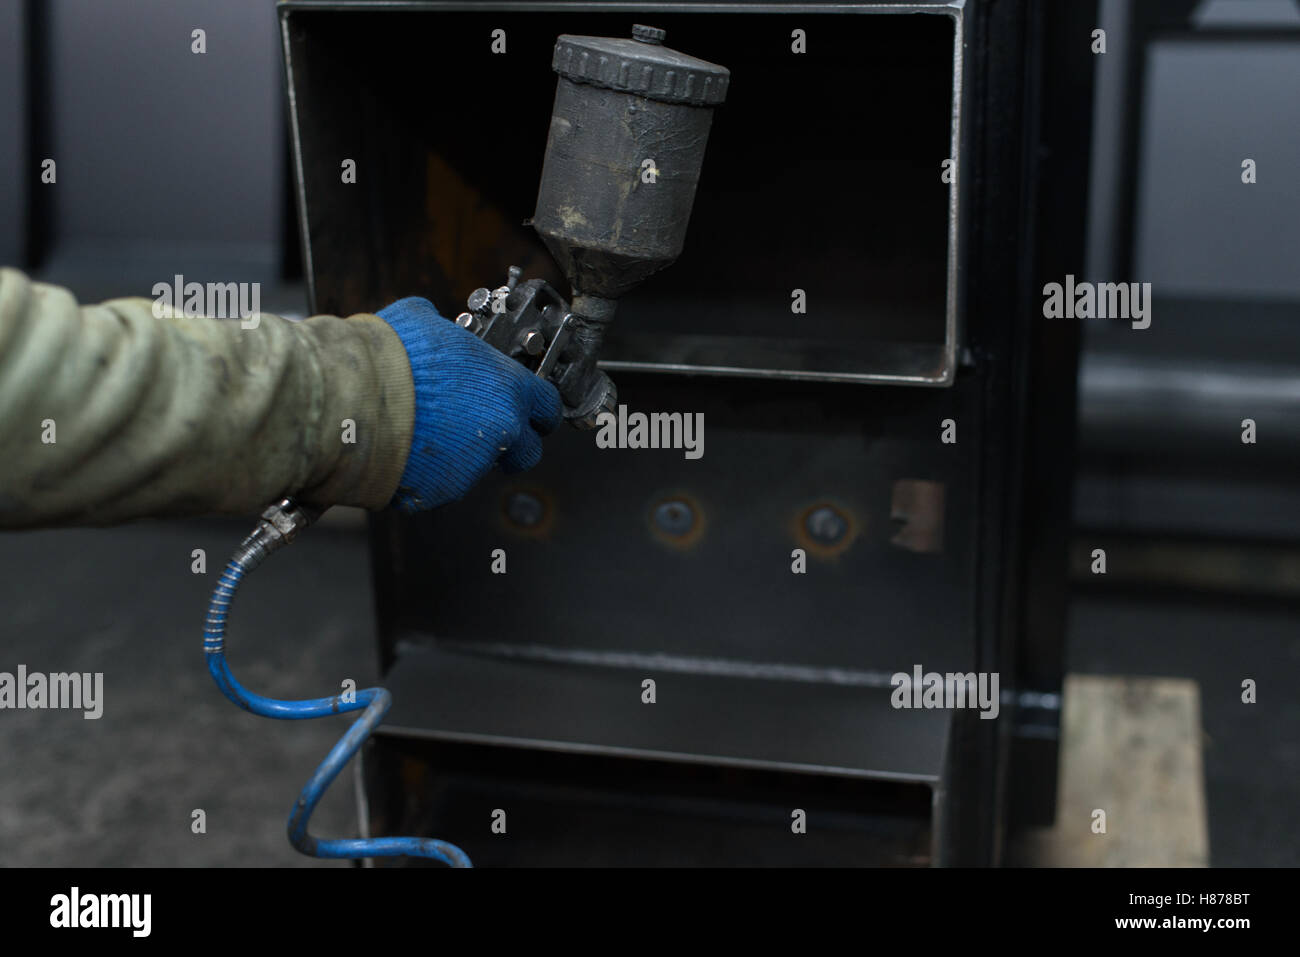 Closein Boiler Close Up Of Man S Hand Painting Black Solid Fuel Boiler Stock